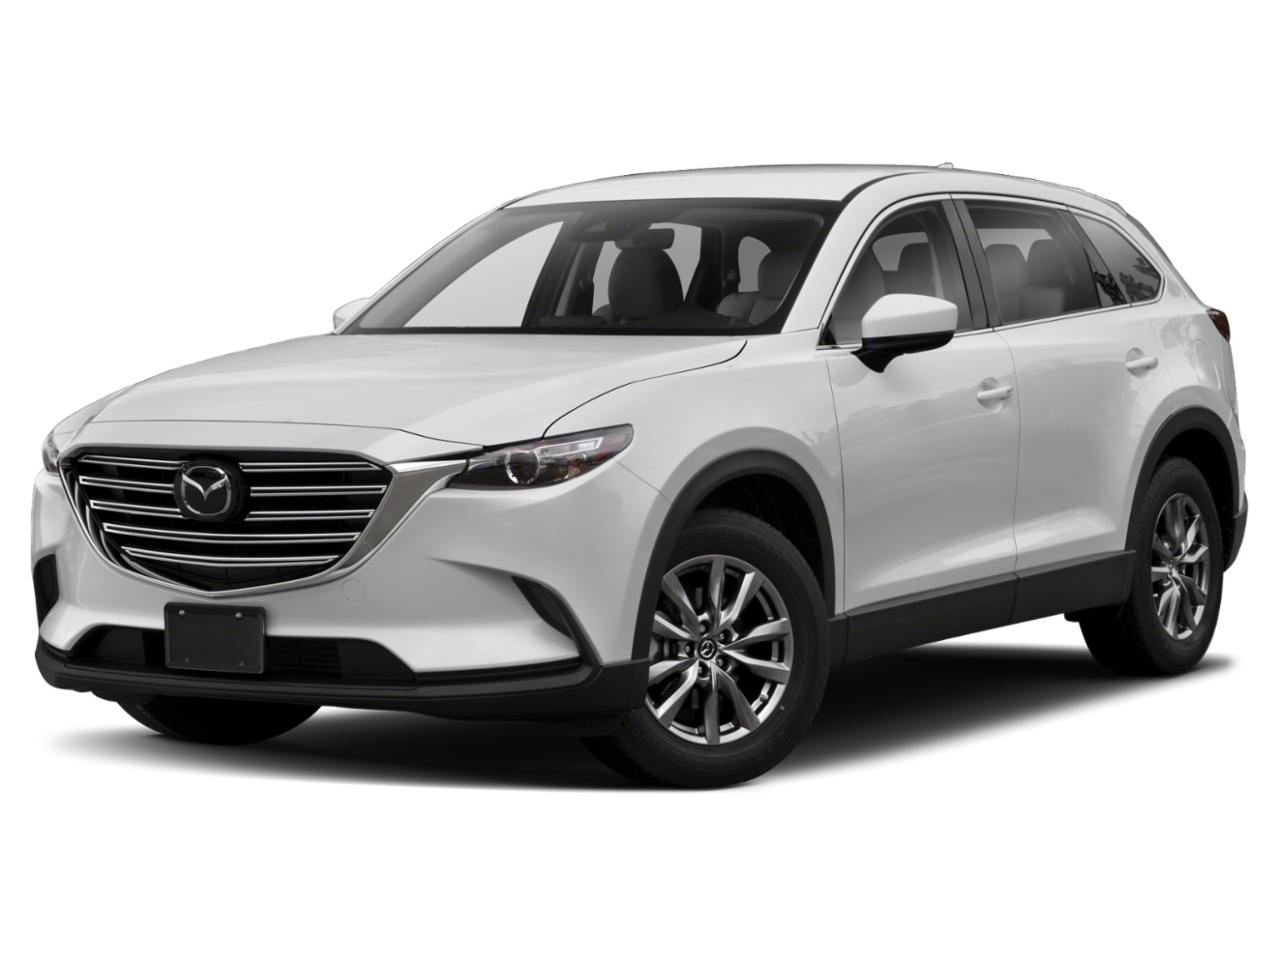 2019 Mazda CX-9 Vehicle Photo in Nashua, NH 03060